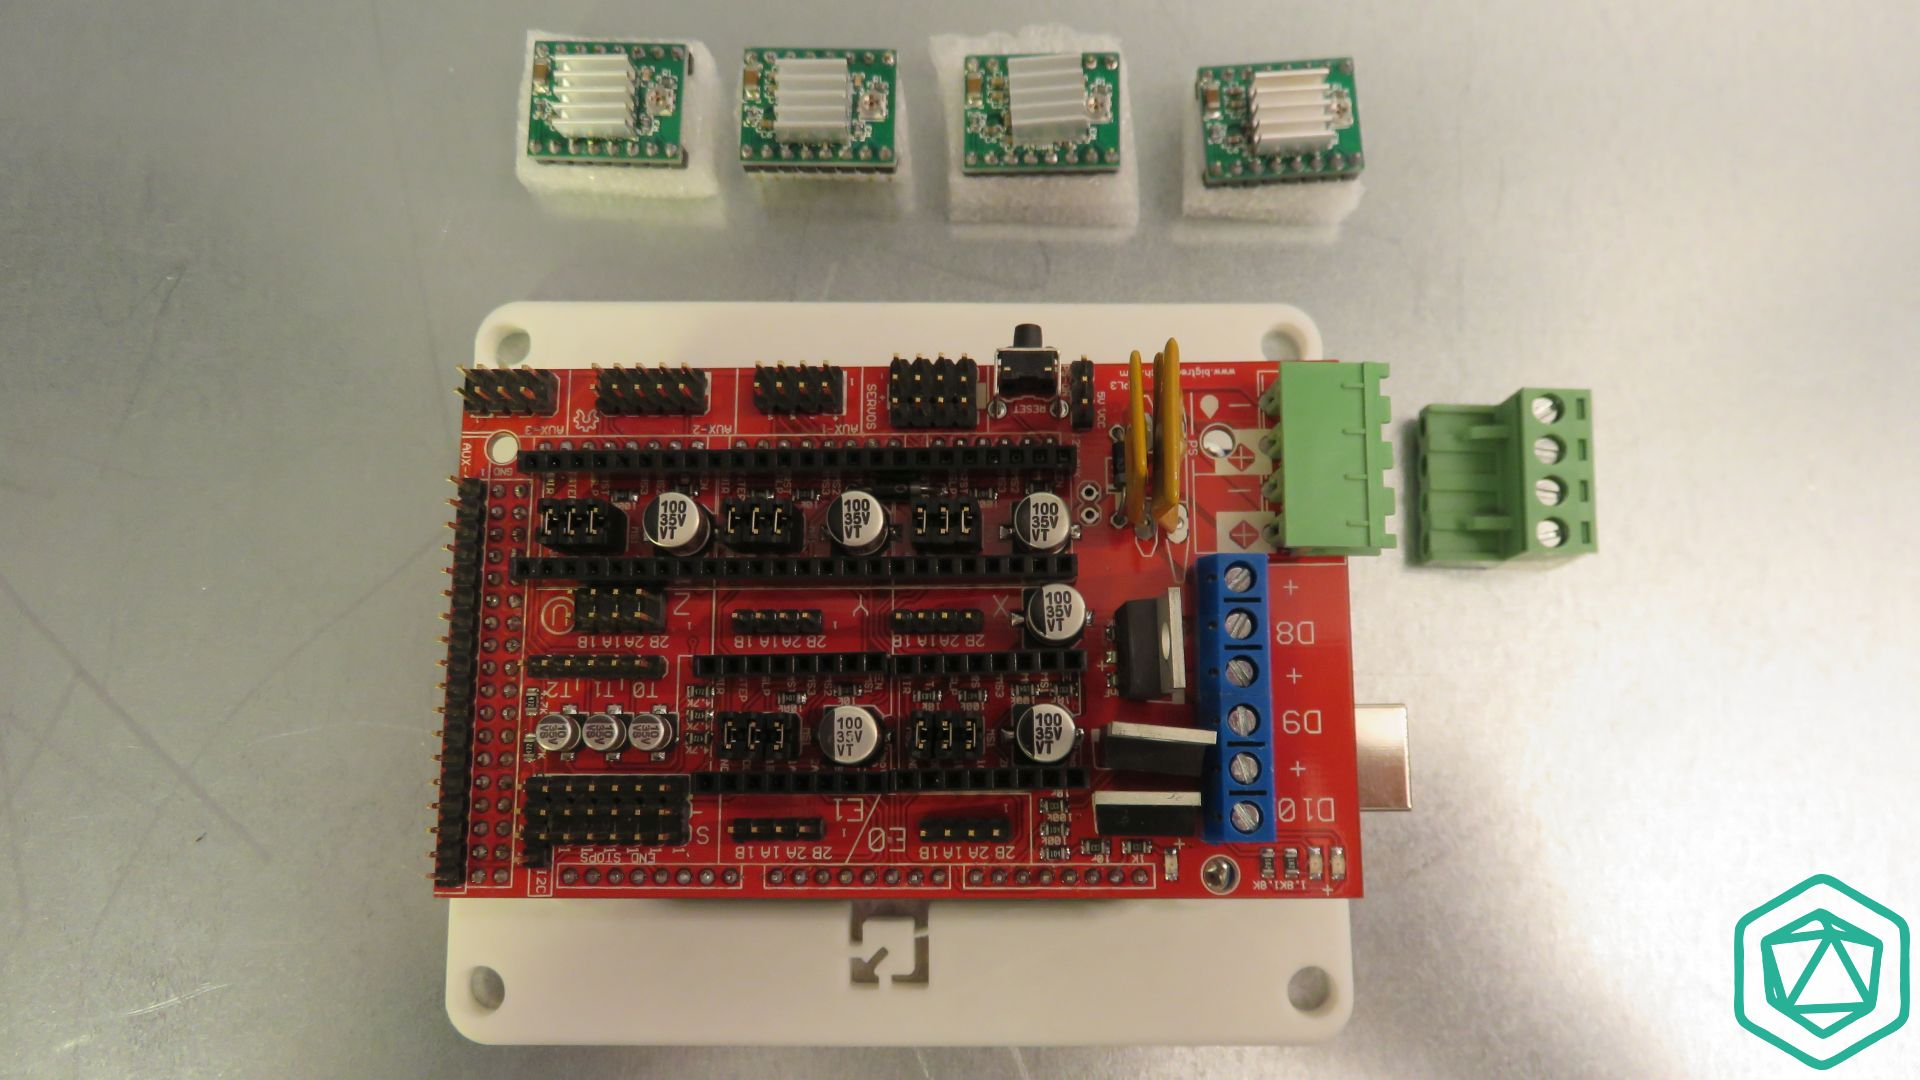 Wiring Archives 3d Modular Systems Ramps 14 Board Placement Of Stepper Motor Drivers On The